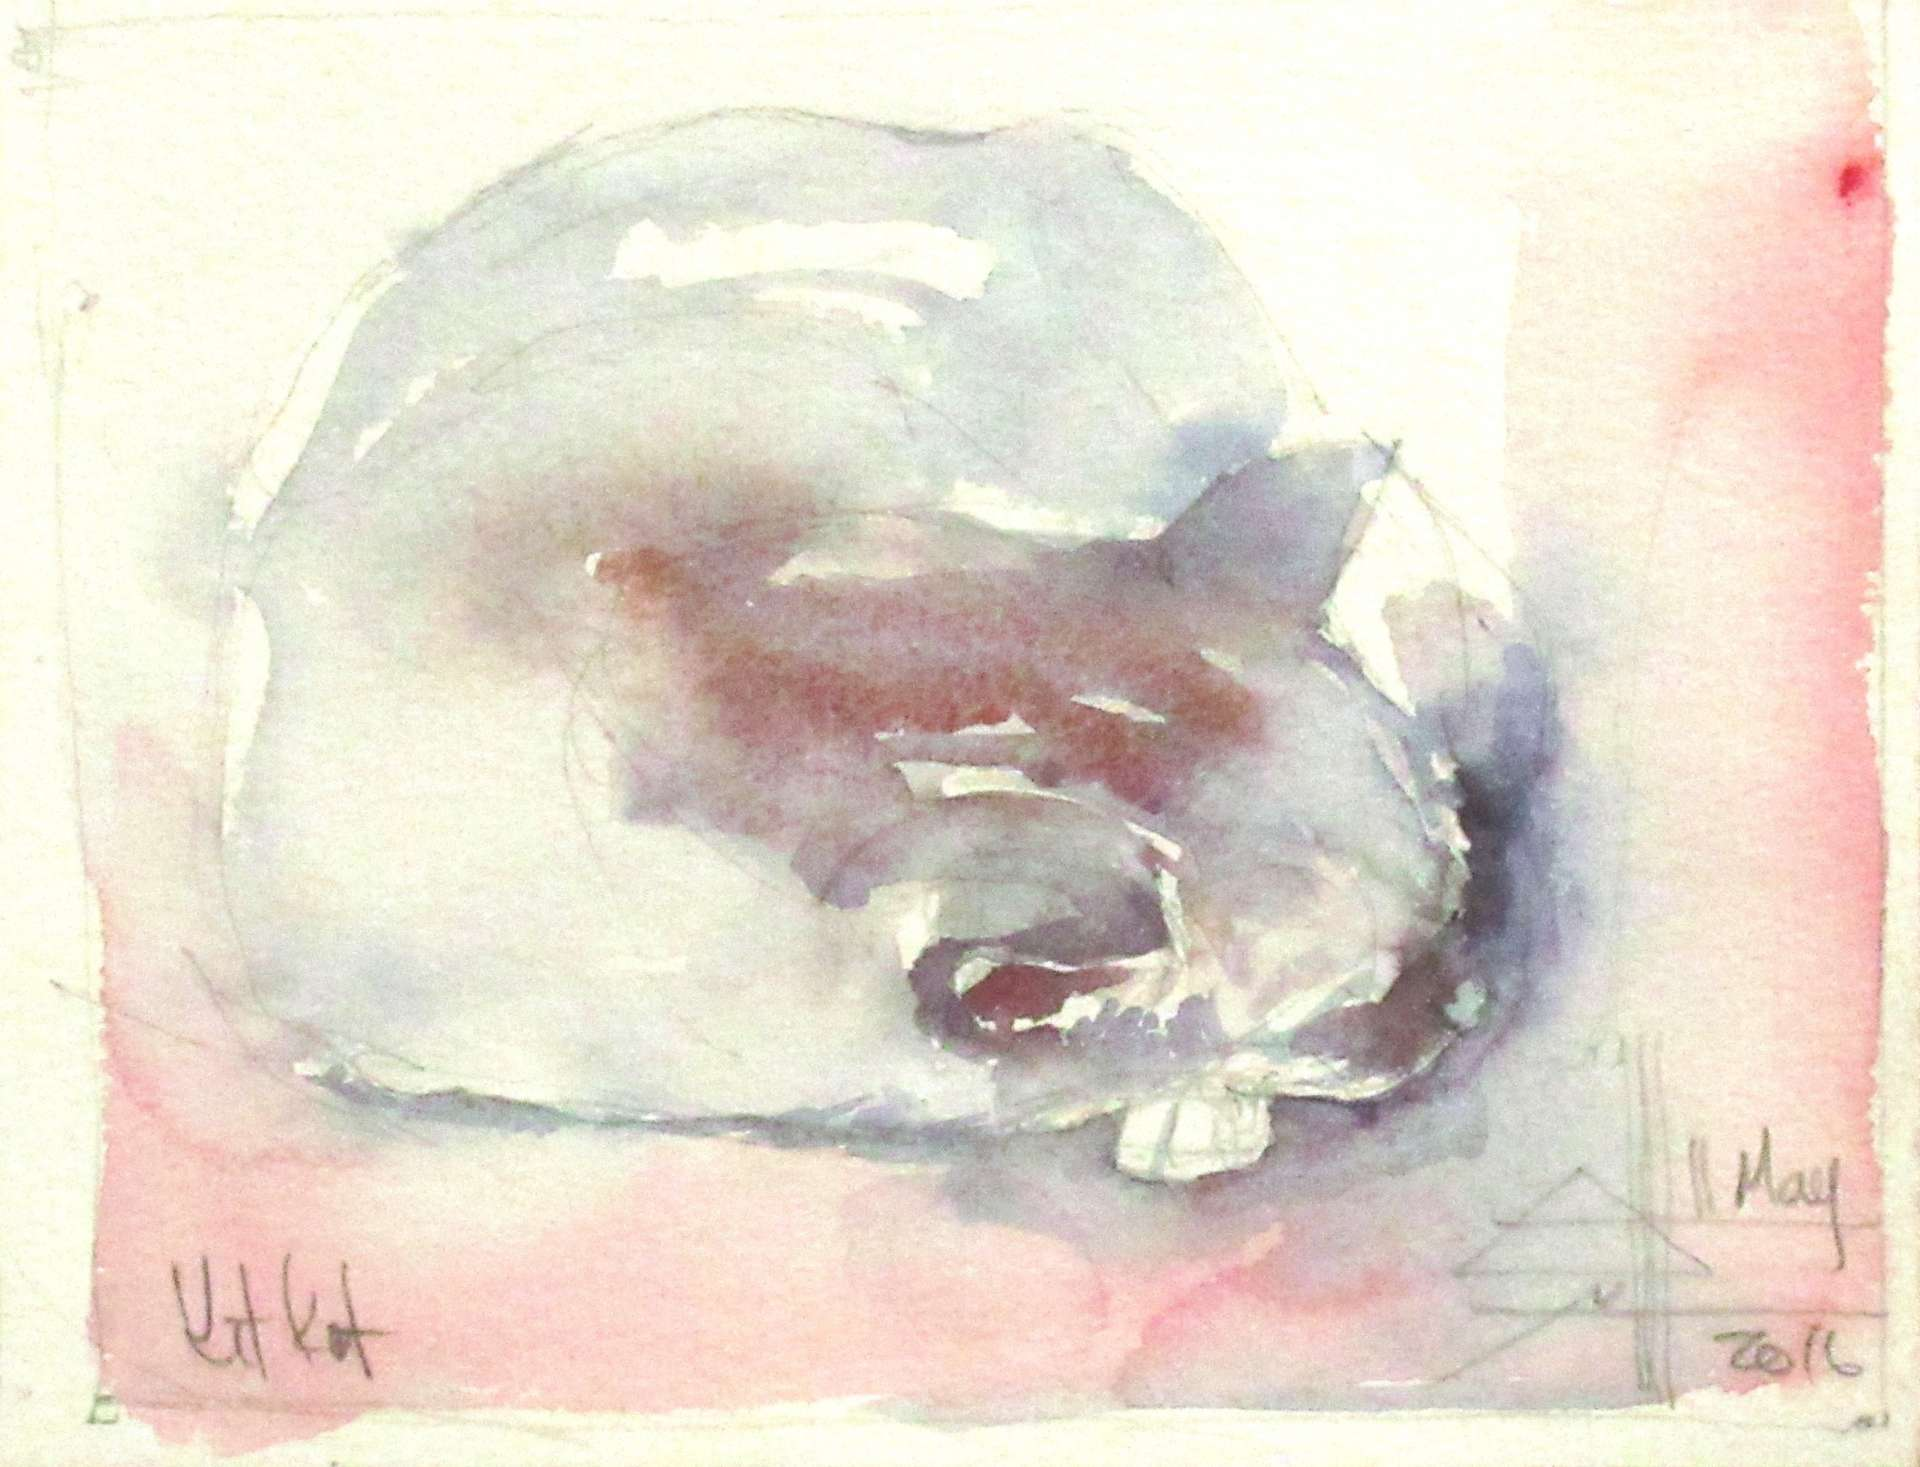 A watercolour painting of the cat - KitKatKatniss the cat asleep